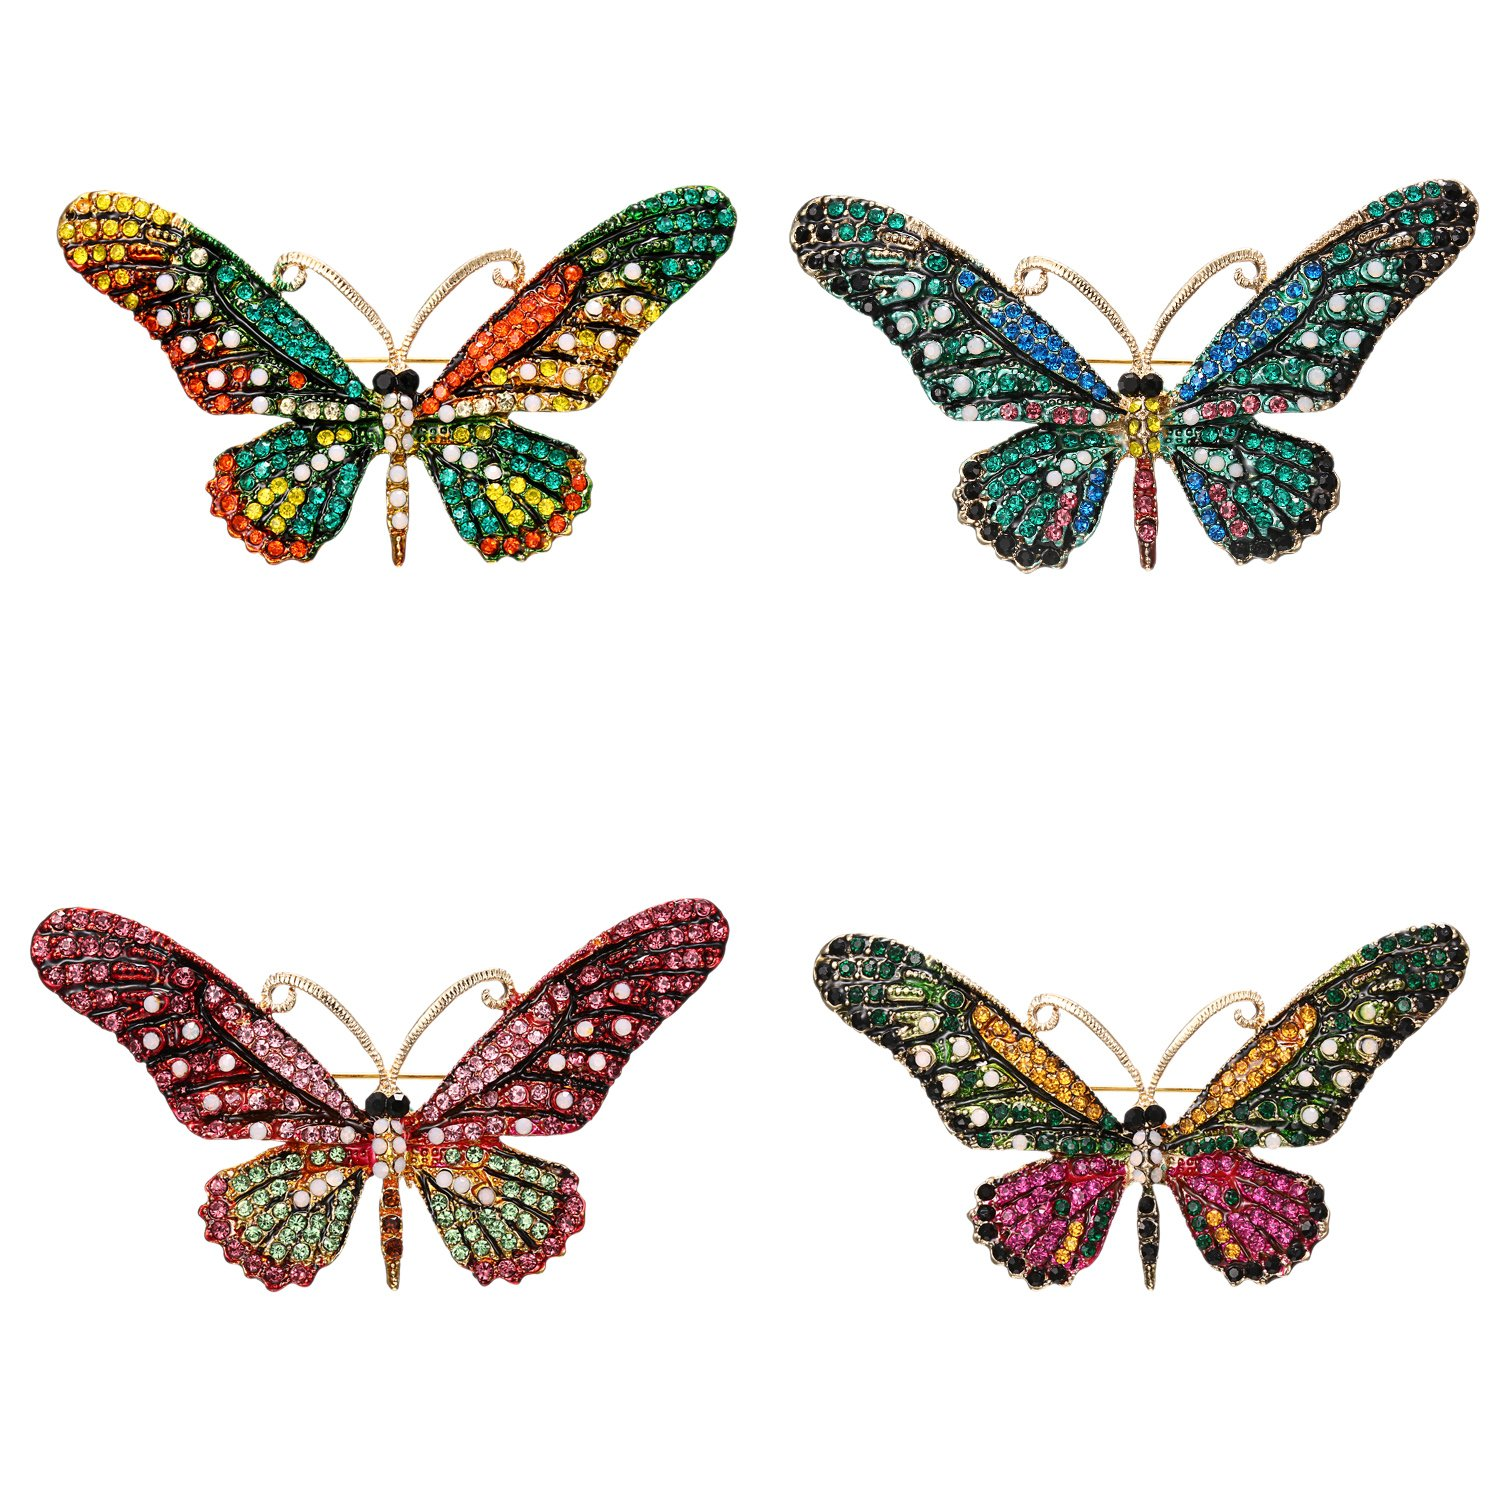 iDMSON Clear Rhinestone Butterfly Brooch Pin - Colorful Crystal Gold Plated Animal Enamel Lapel Pin For Women (4Pcs)